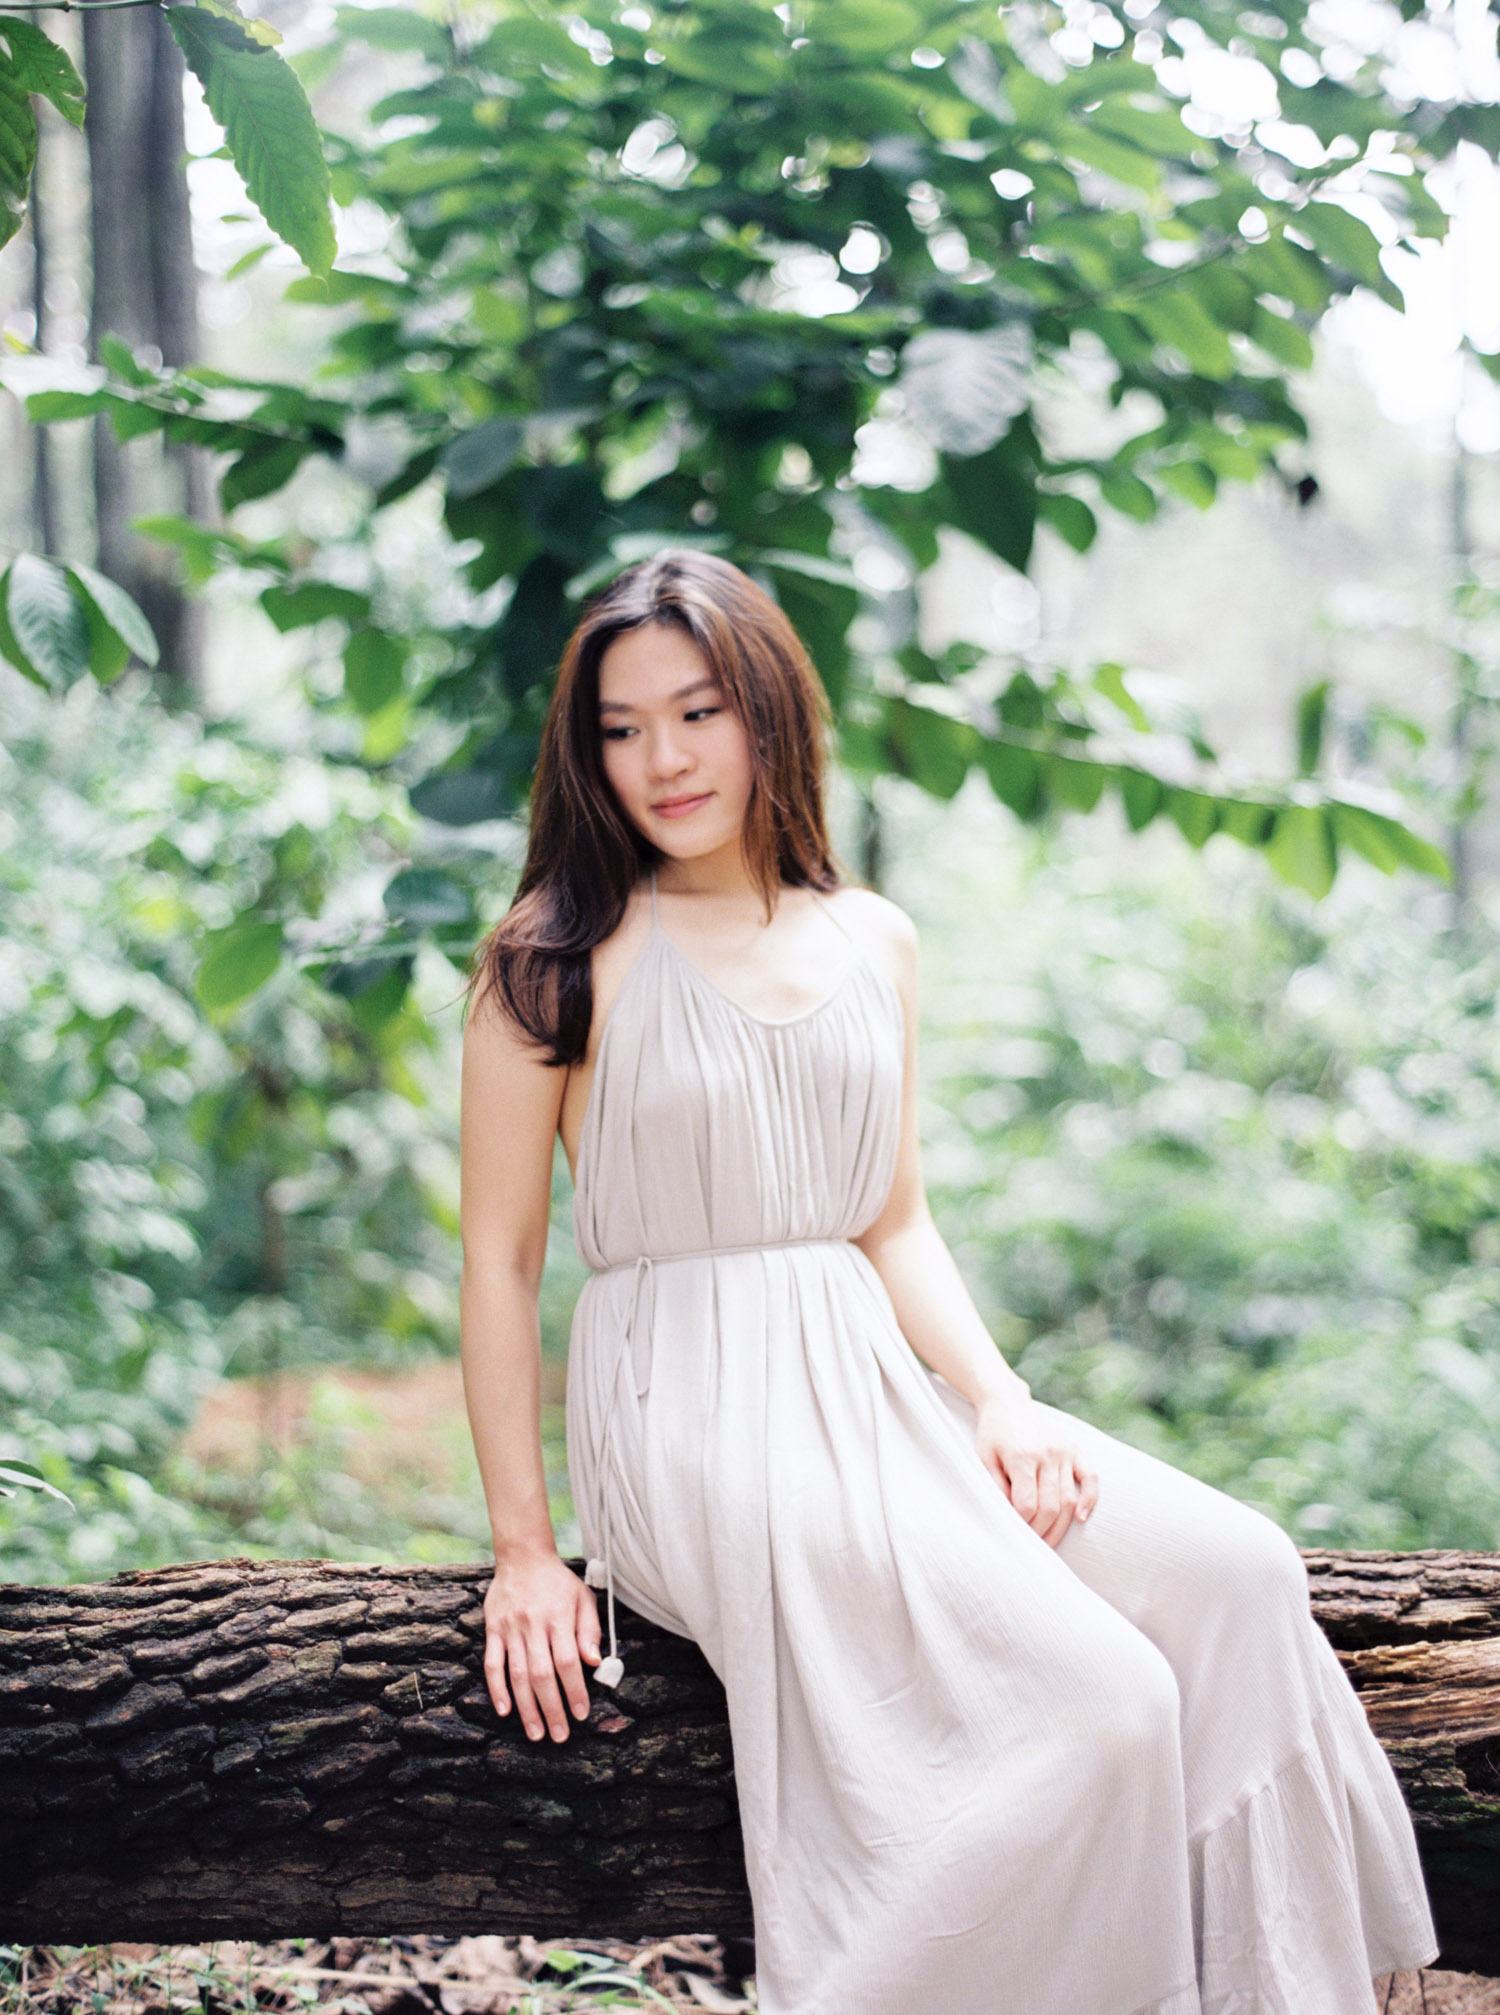 27-nature-outdoor-forest-prewedding-jakarta.jpg